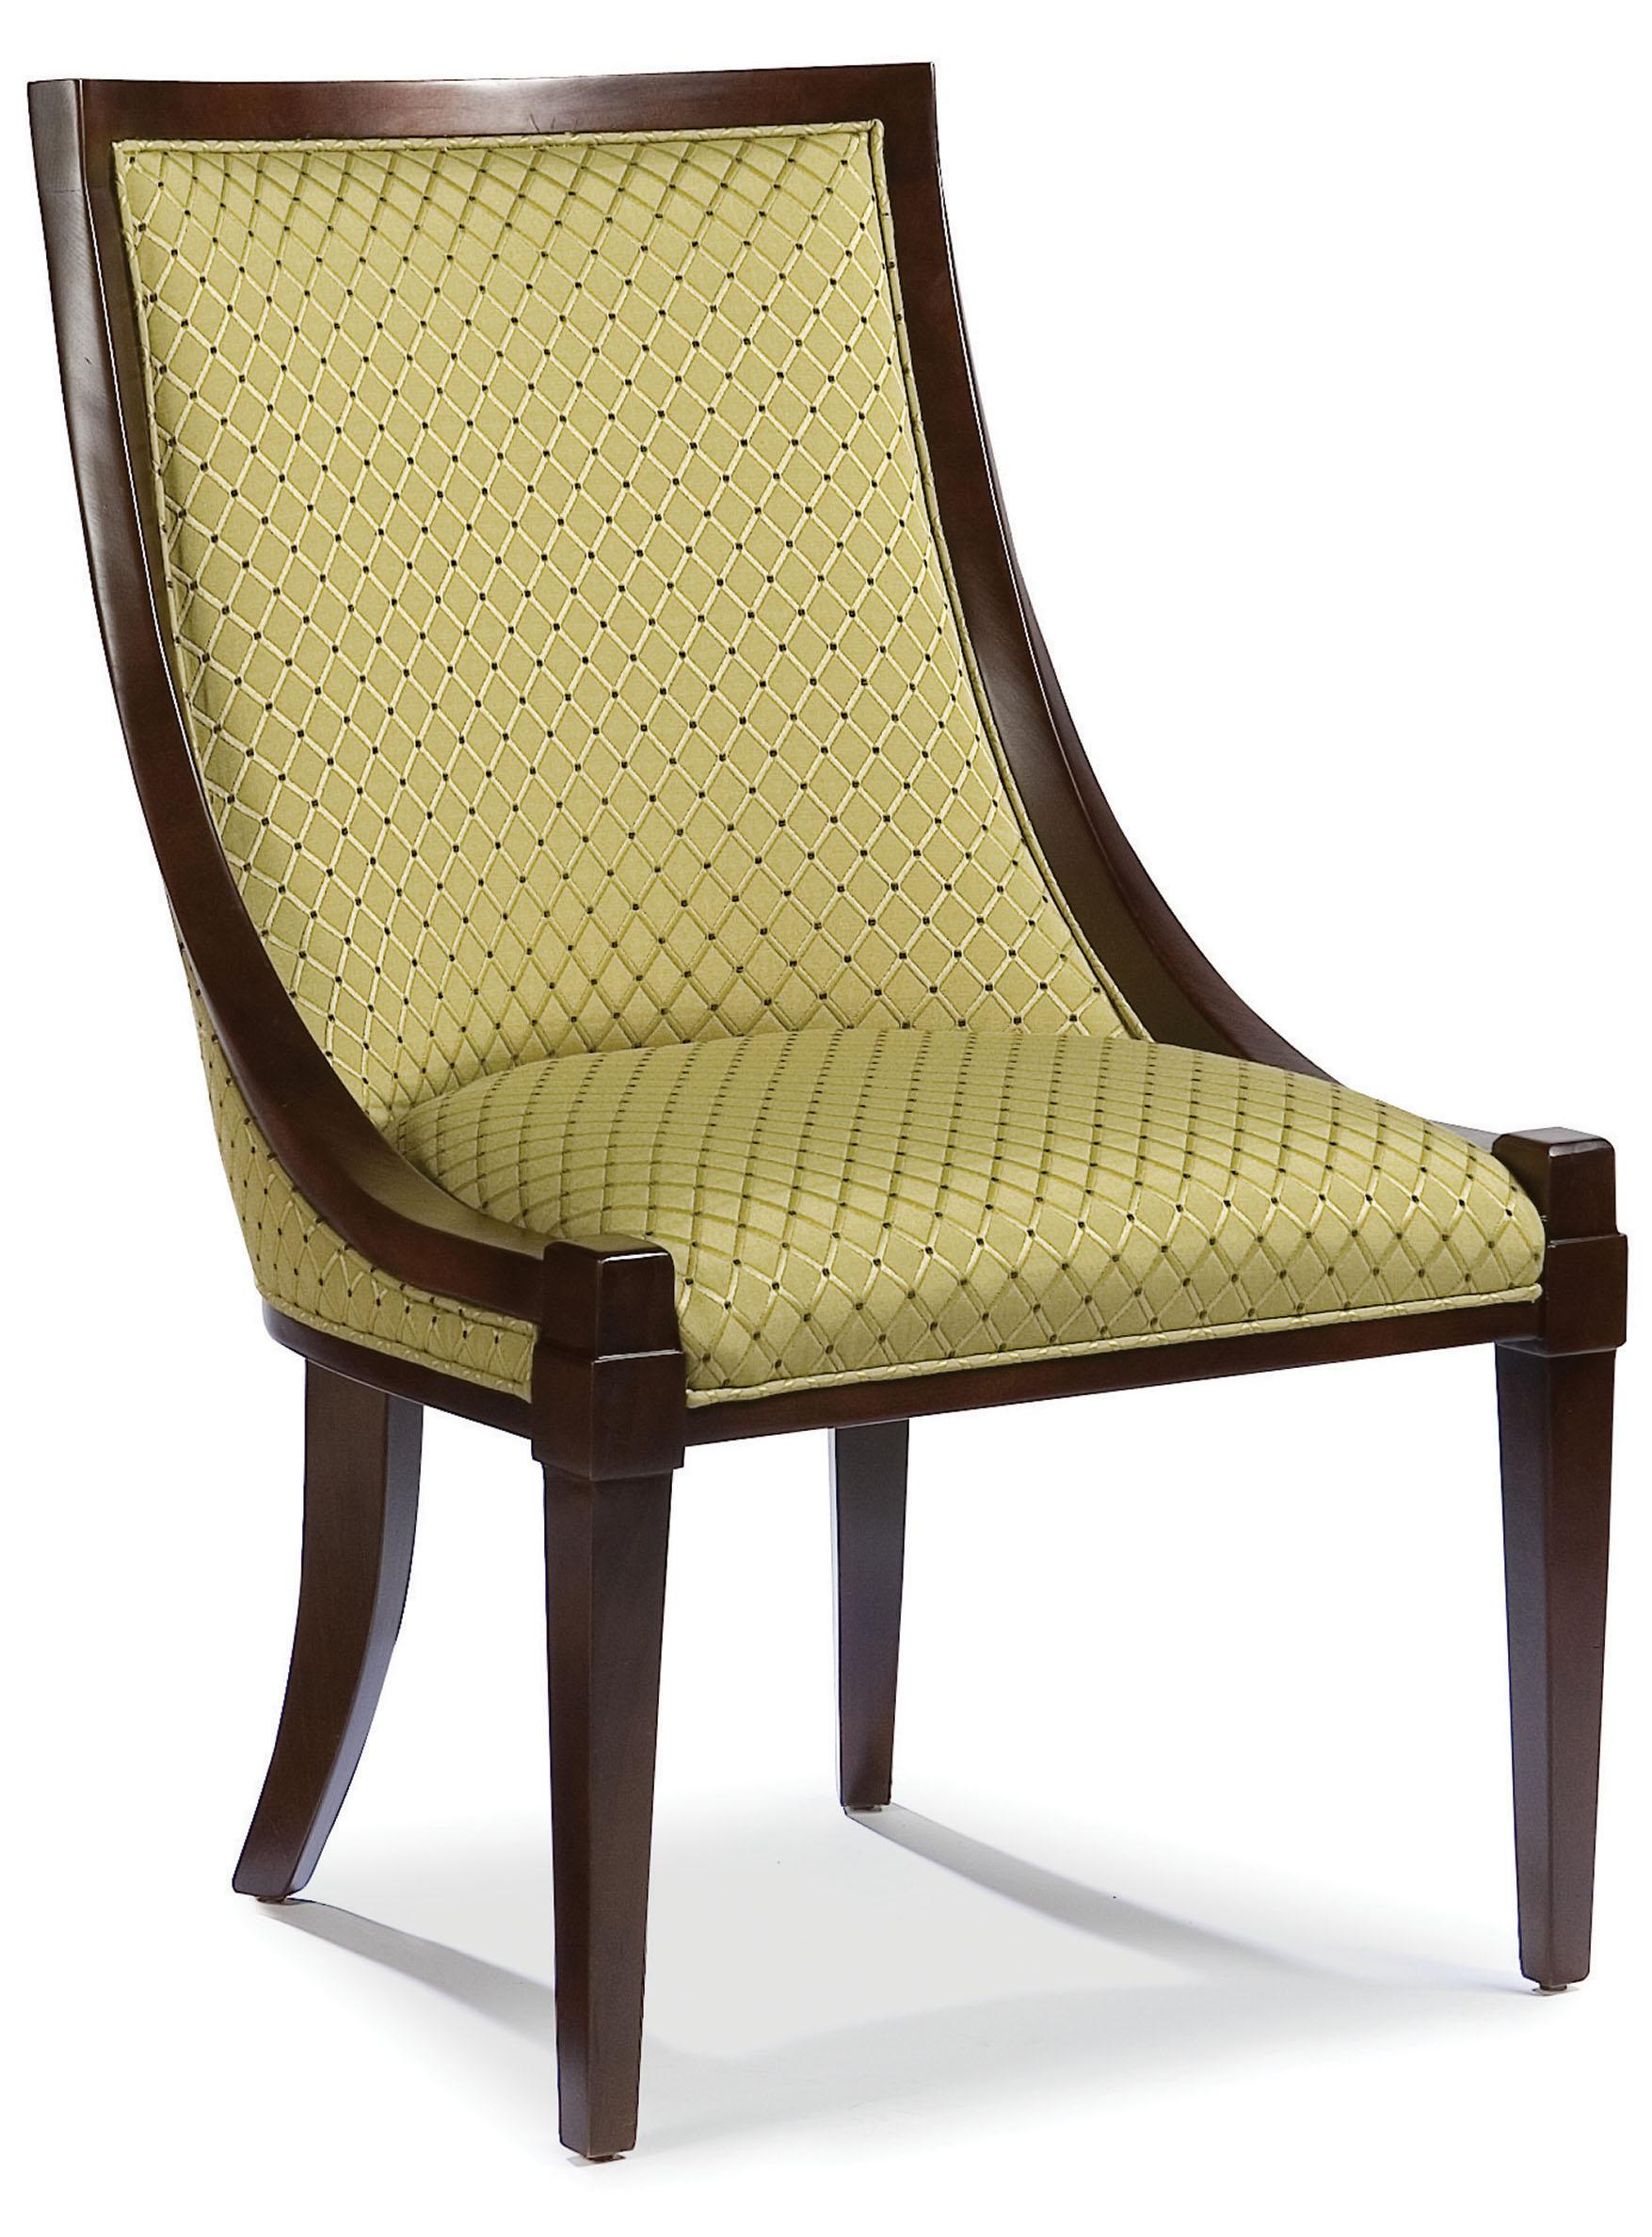 Fairfield Chairs Exposed Wood Chair - Item Number: 1476-01